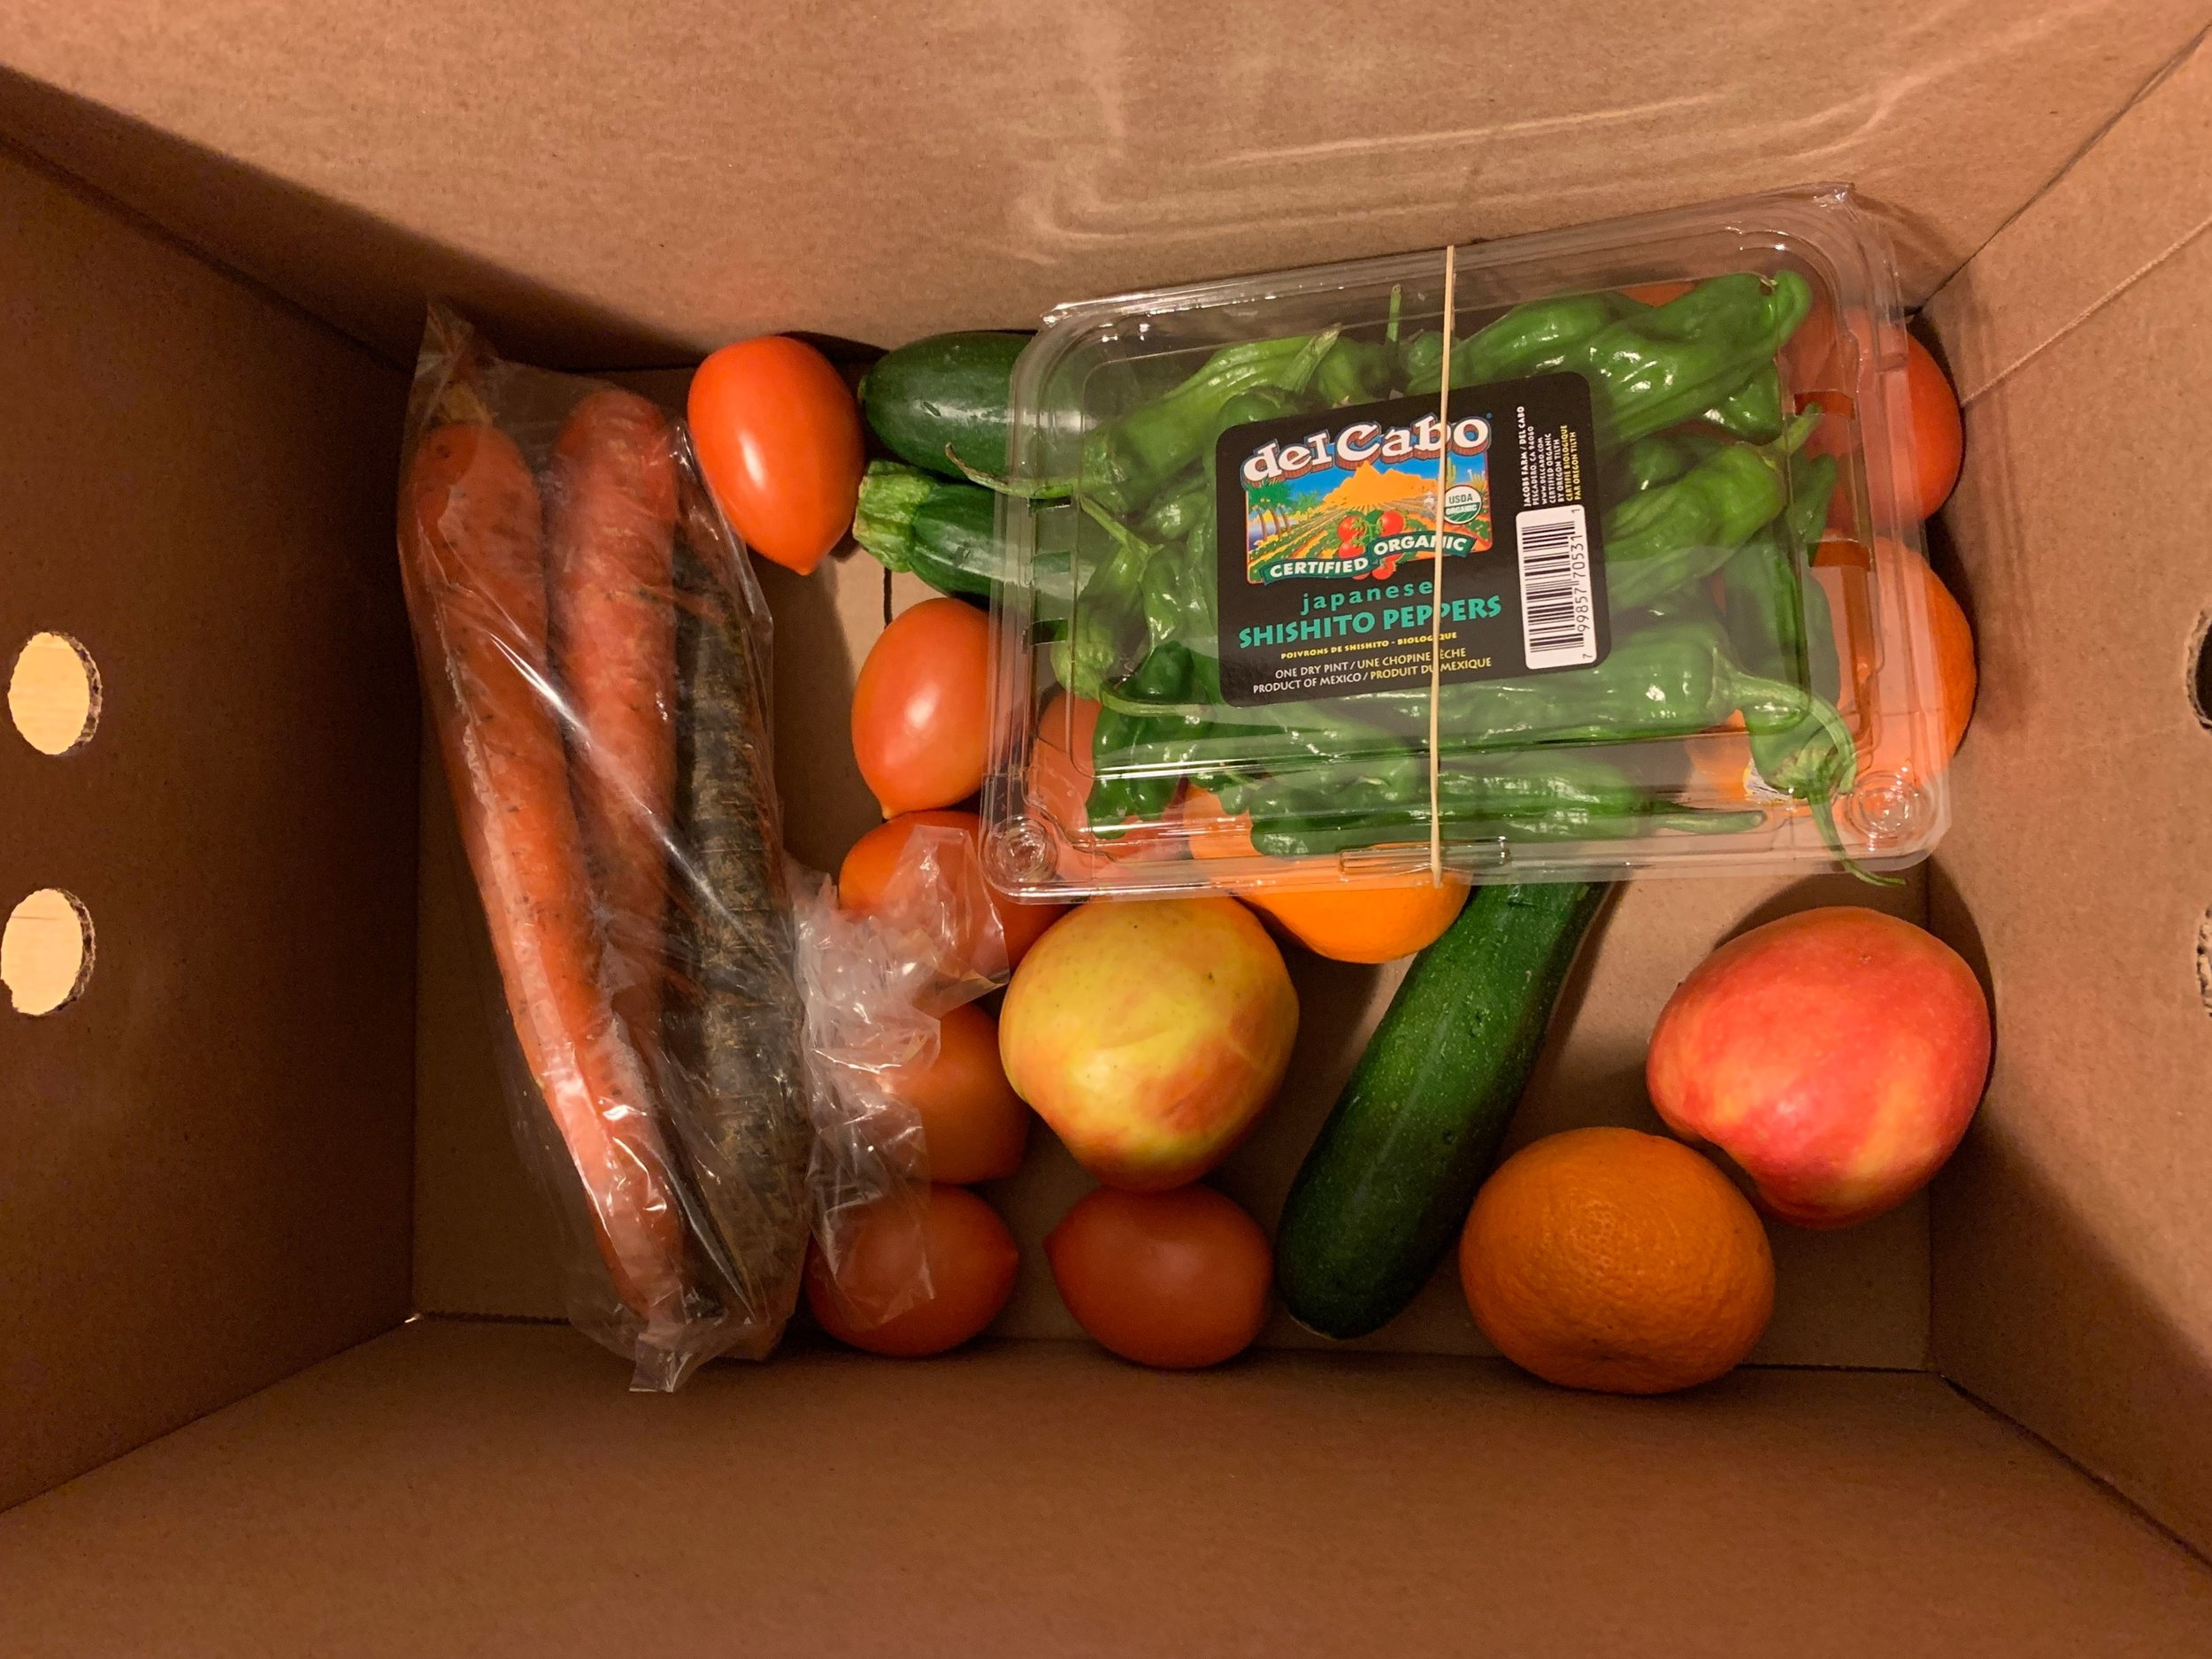 Our box included: 5 large rainbow carrots, a package of shishito peppers, 3 apples, 4 mandarins, 7 roma tomatoes, and 3 zucchini.